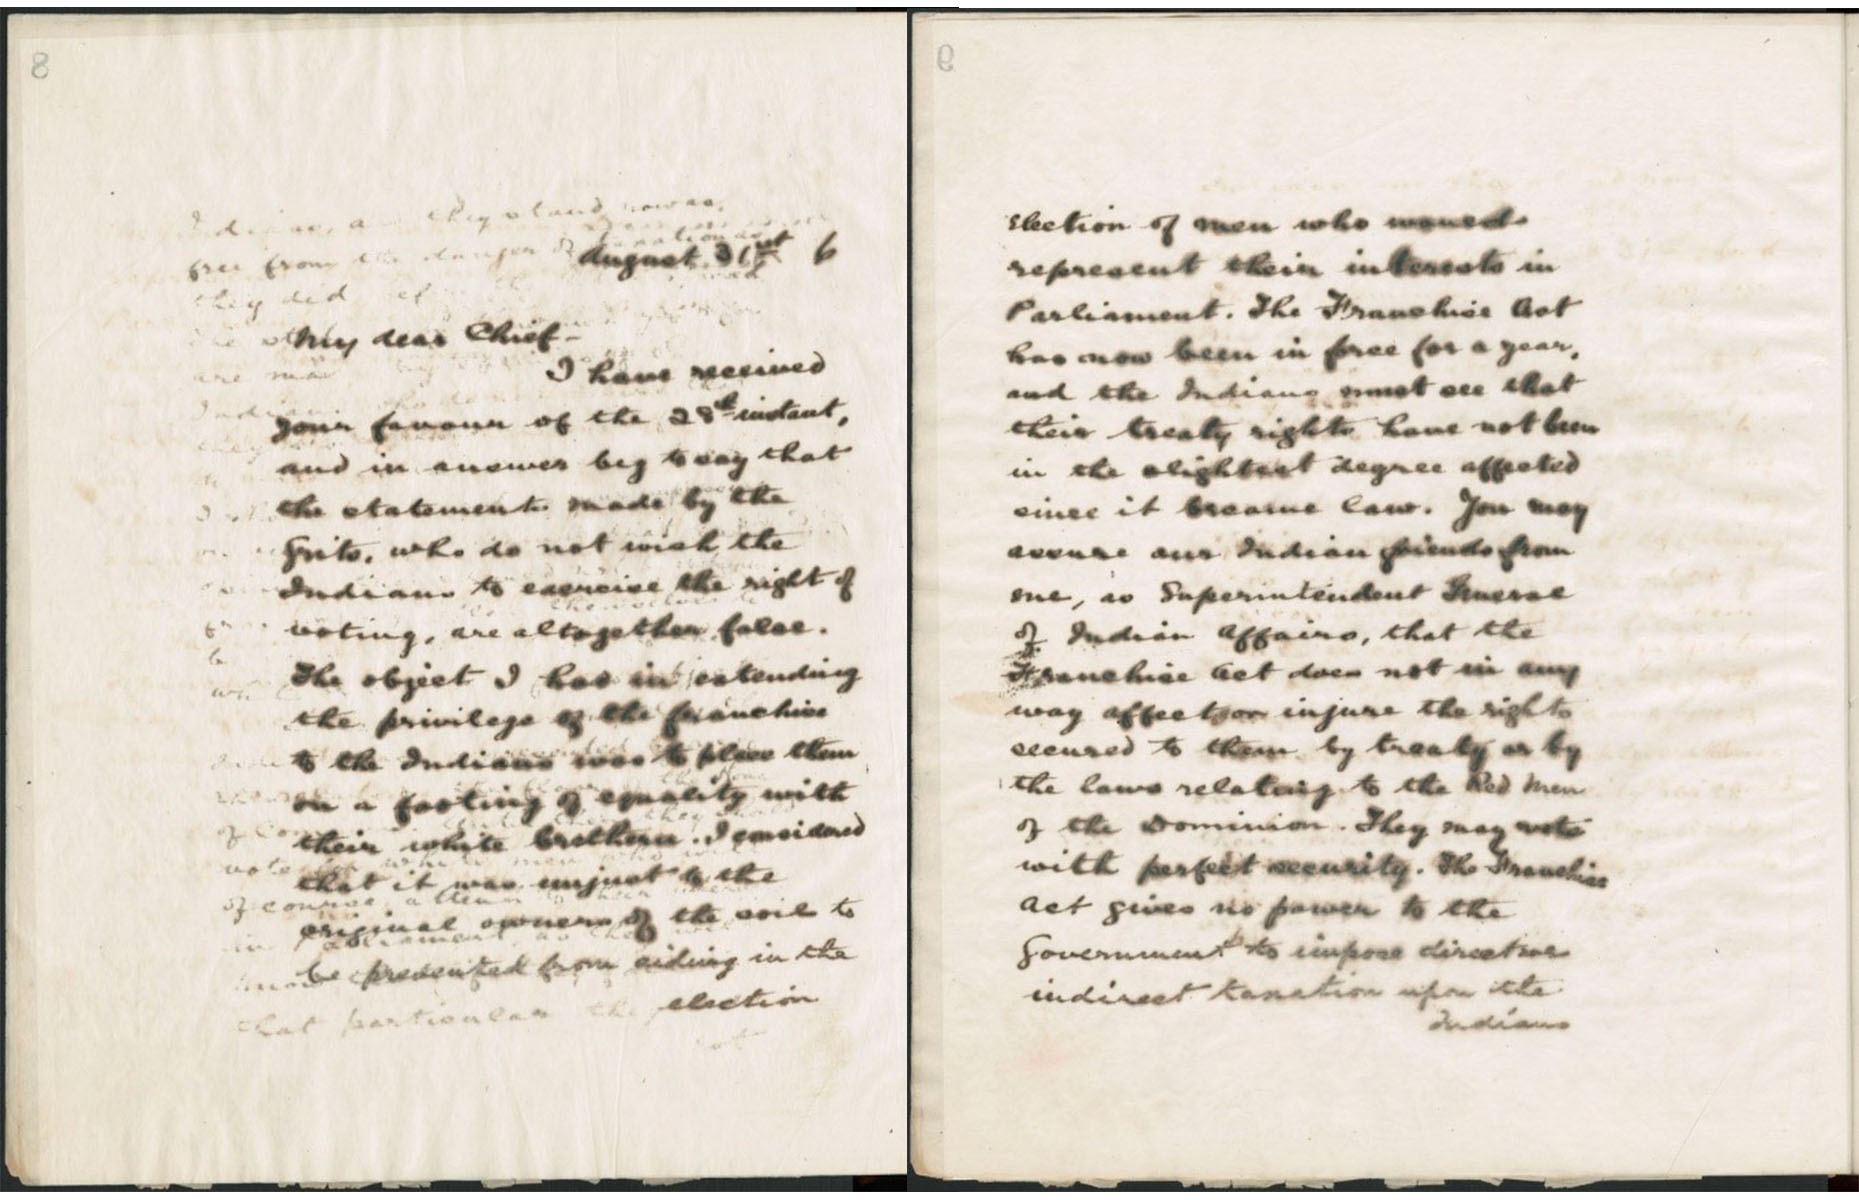 A sepia scan of a handwritten letter.